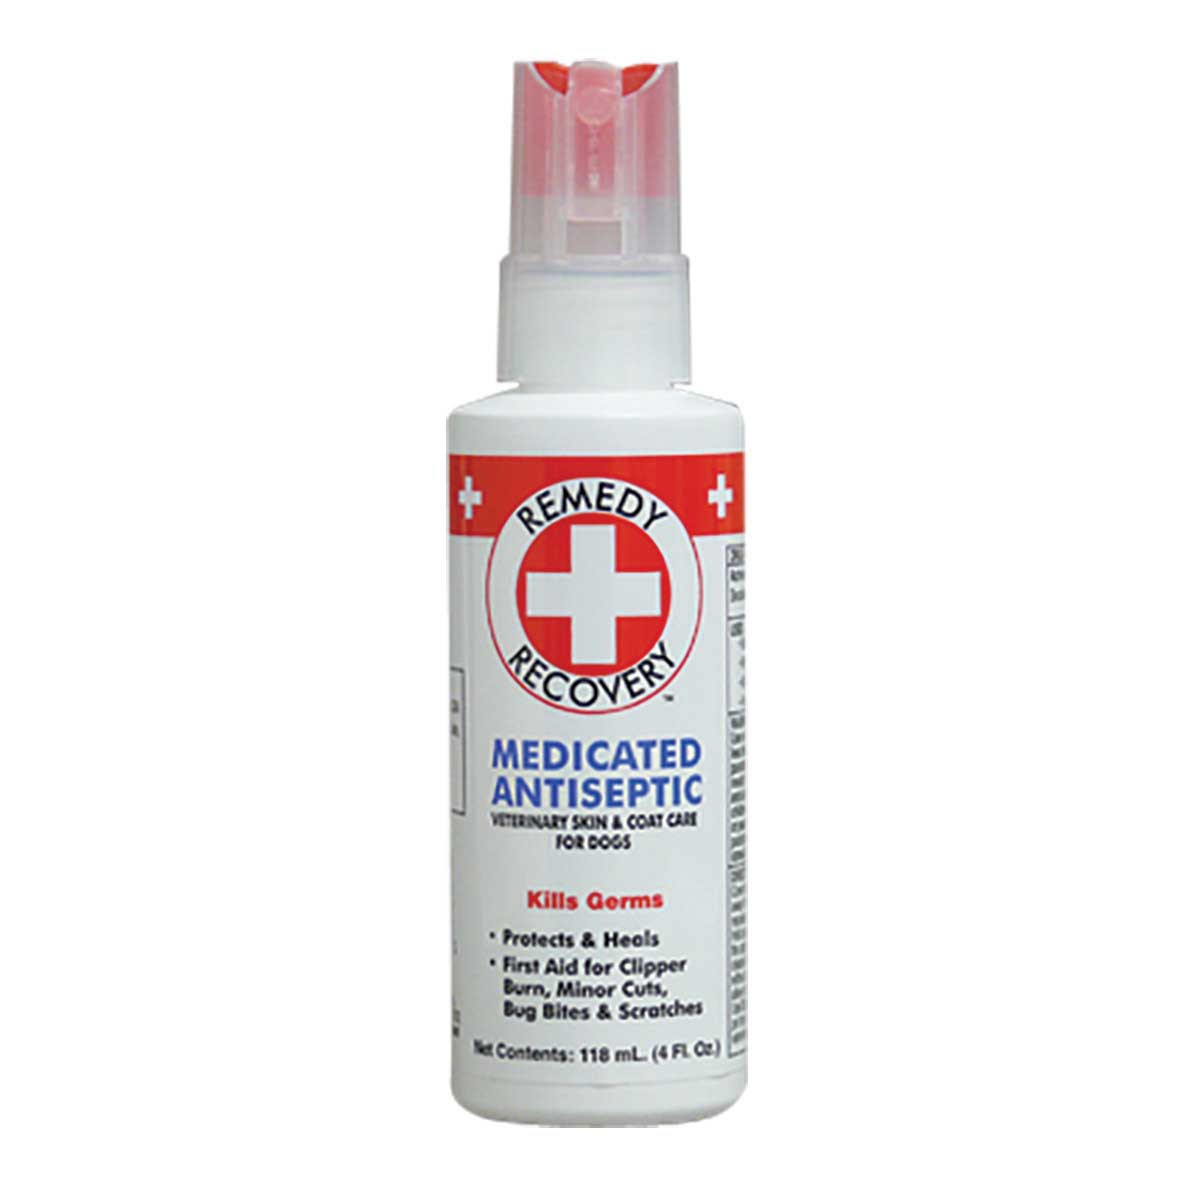 Remedy + Recovery Medicated Antiseptic